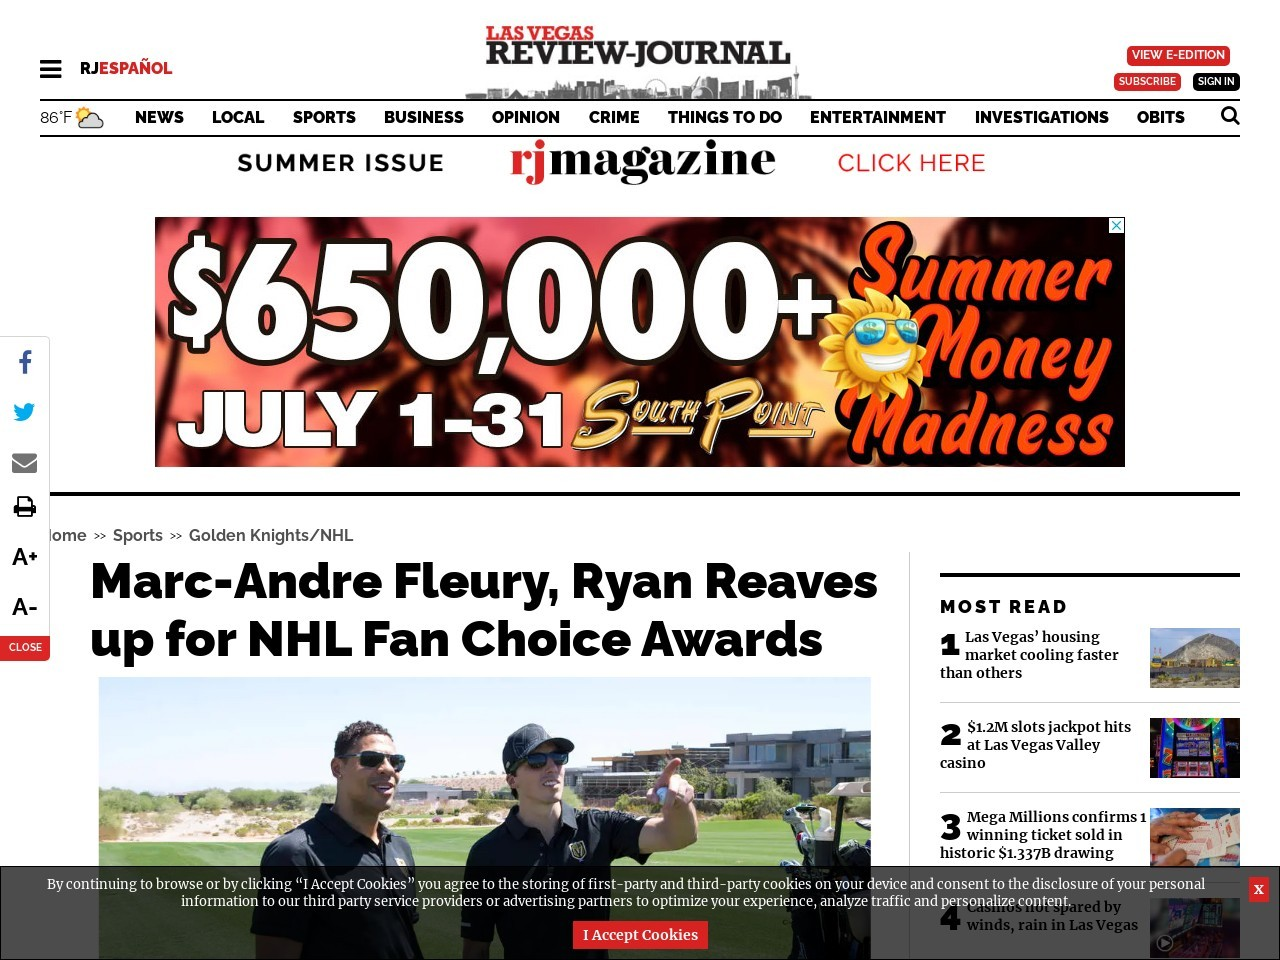 Marc-Andre Fleury, Ryan Reaves up for NHL Fan Choice Awards